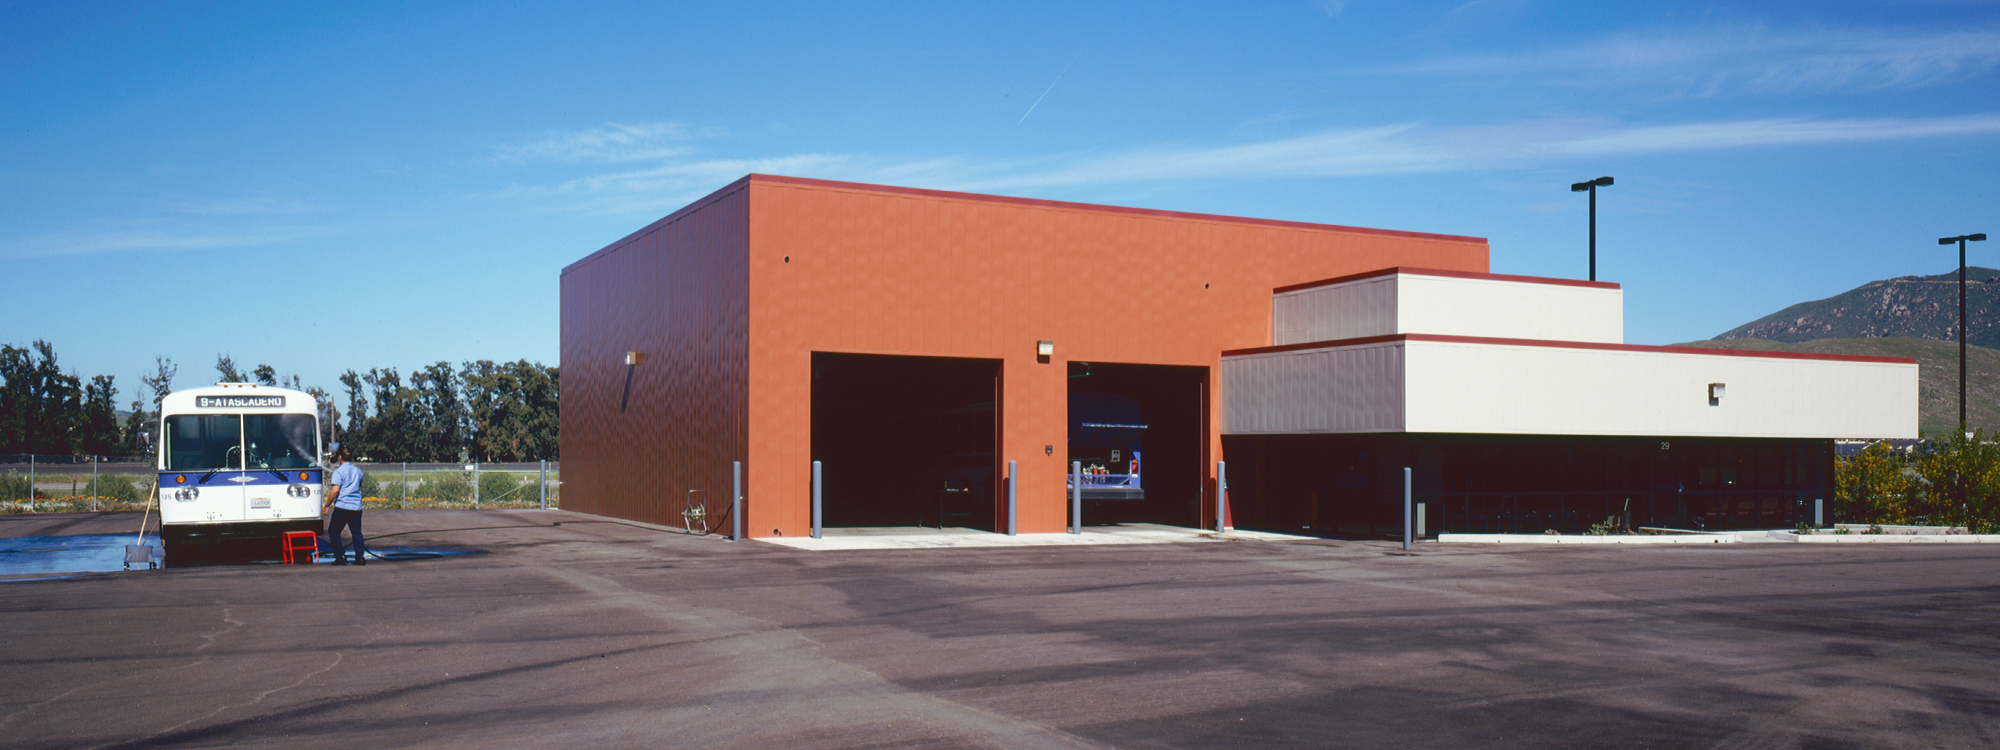 Bus Maintenance Facility Building Contractor and Builder - JW Design & Construction